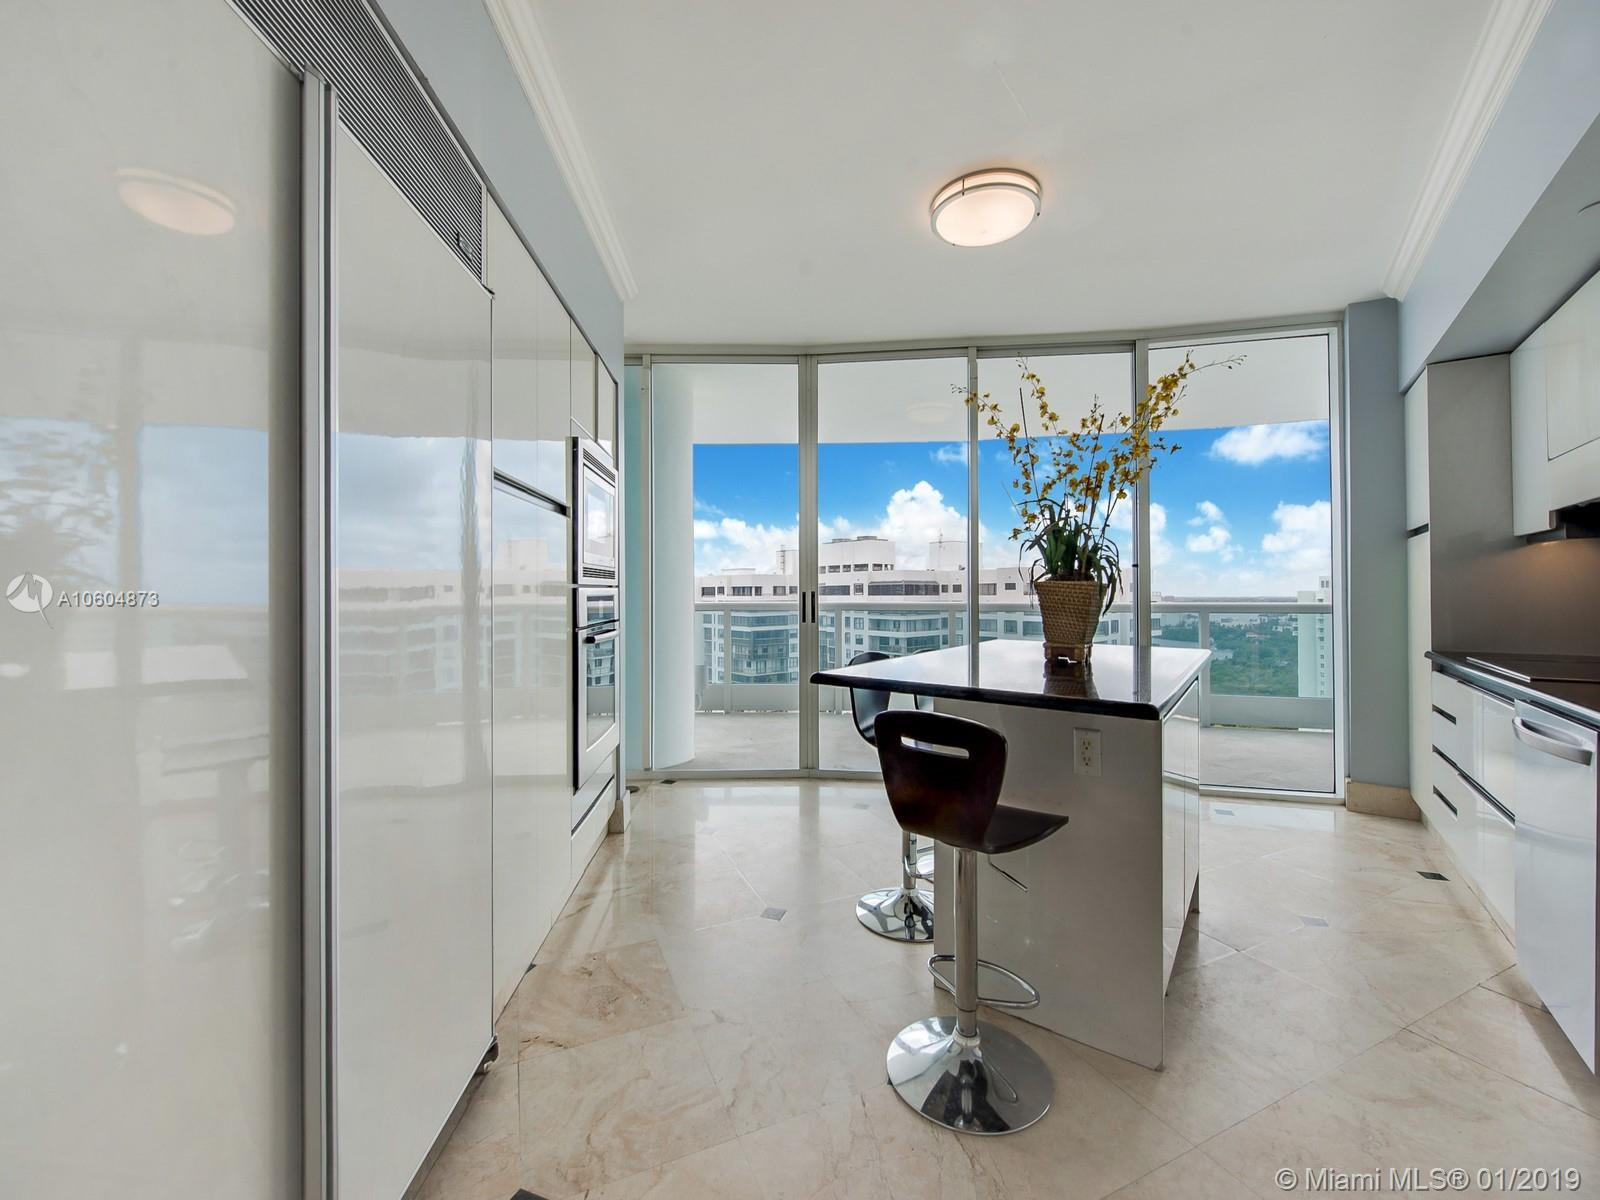 2127 Brickell Avenue, Miami, FL 33129, Bristol Tower Condominium #3102, Brickell, Miami A10604873 image #6